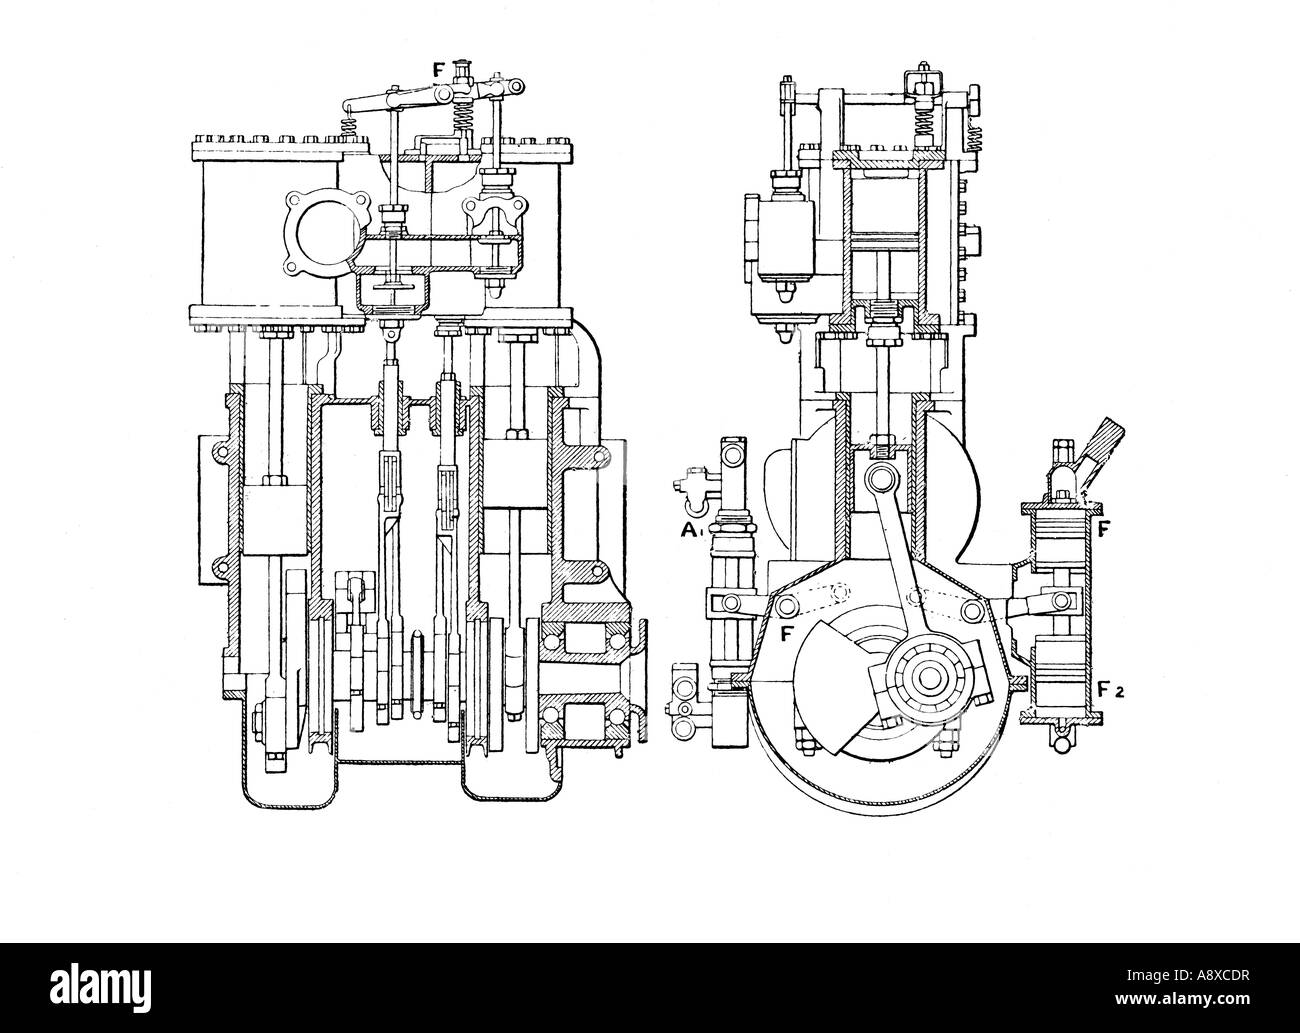 Cool Diagram Of Car Engine Gallery - The Best Electrical Circuit ...